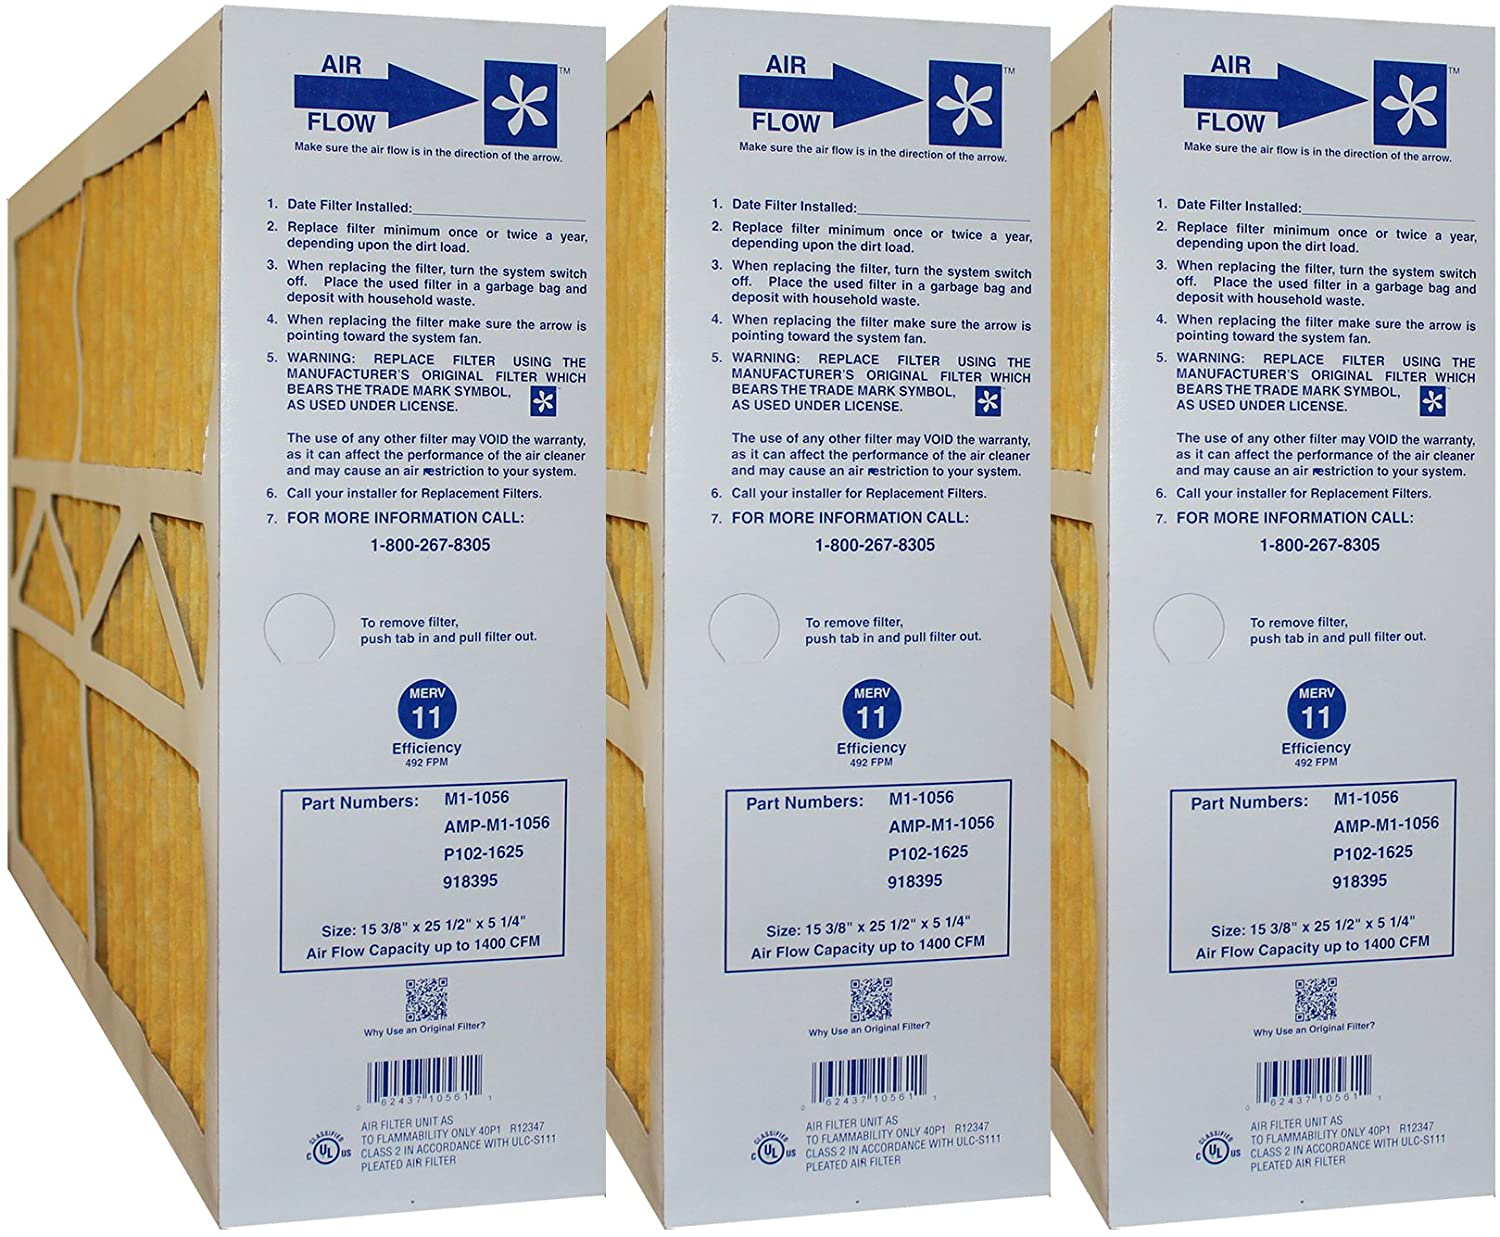 Pack of 100 Sterile Inc Membrane Filter without Pad 47 mm Diameter White Mixed Cellulose Esters 0.20 mm Grid 1182H31PK Advantec MFS A020H047A